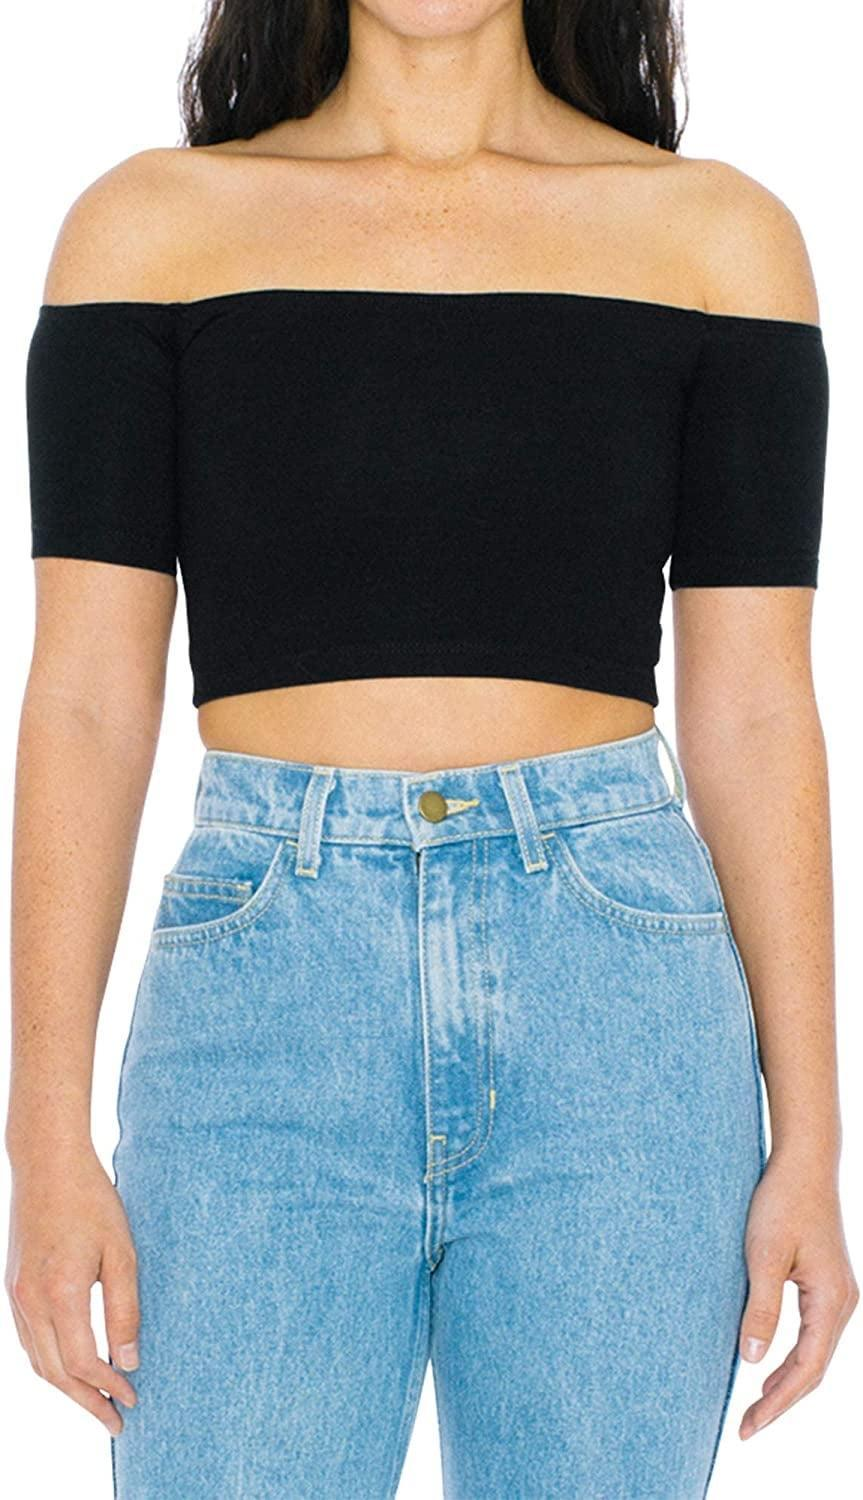 <p>This classic <span>American Apparel Cotton Off-Shoulder Short Sleeve Top</span> ($18) is begging to be styled with your favorite high-waist jeans. Finish off your look with a small off-shoulder bag and some low white sneakers.</p>